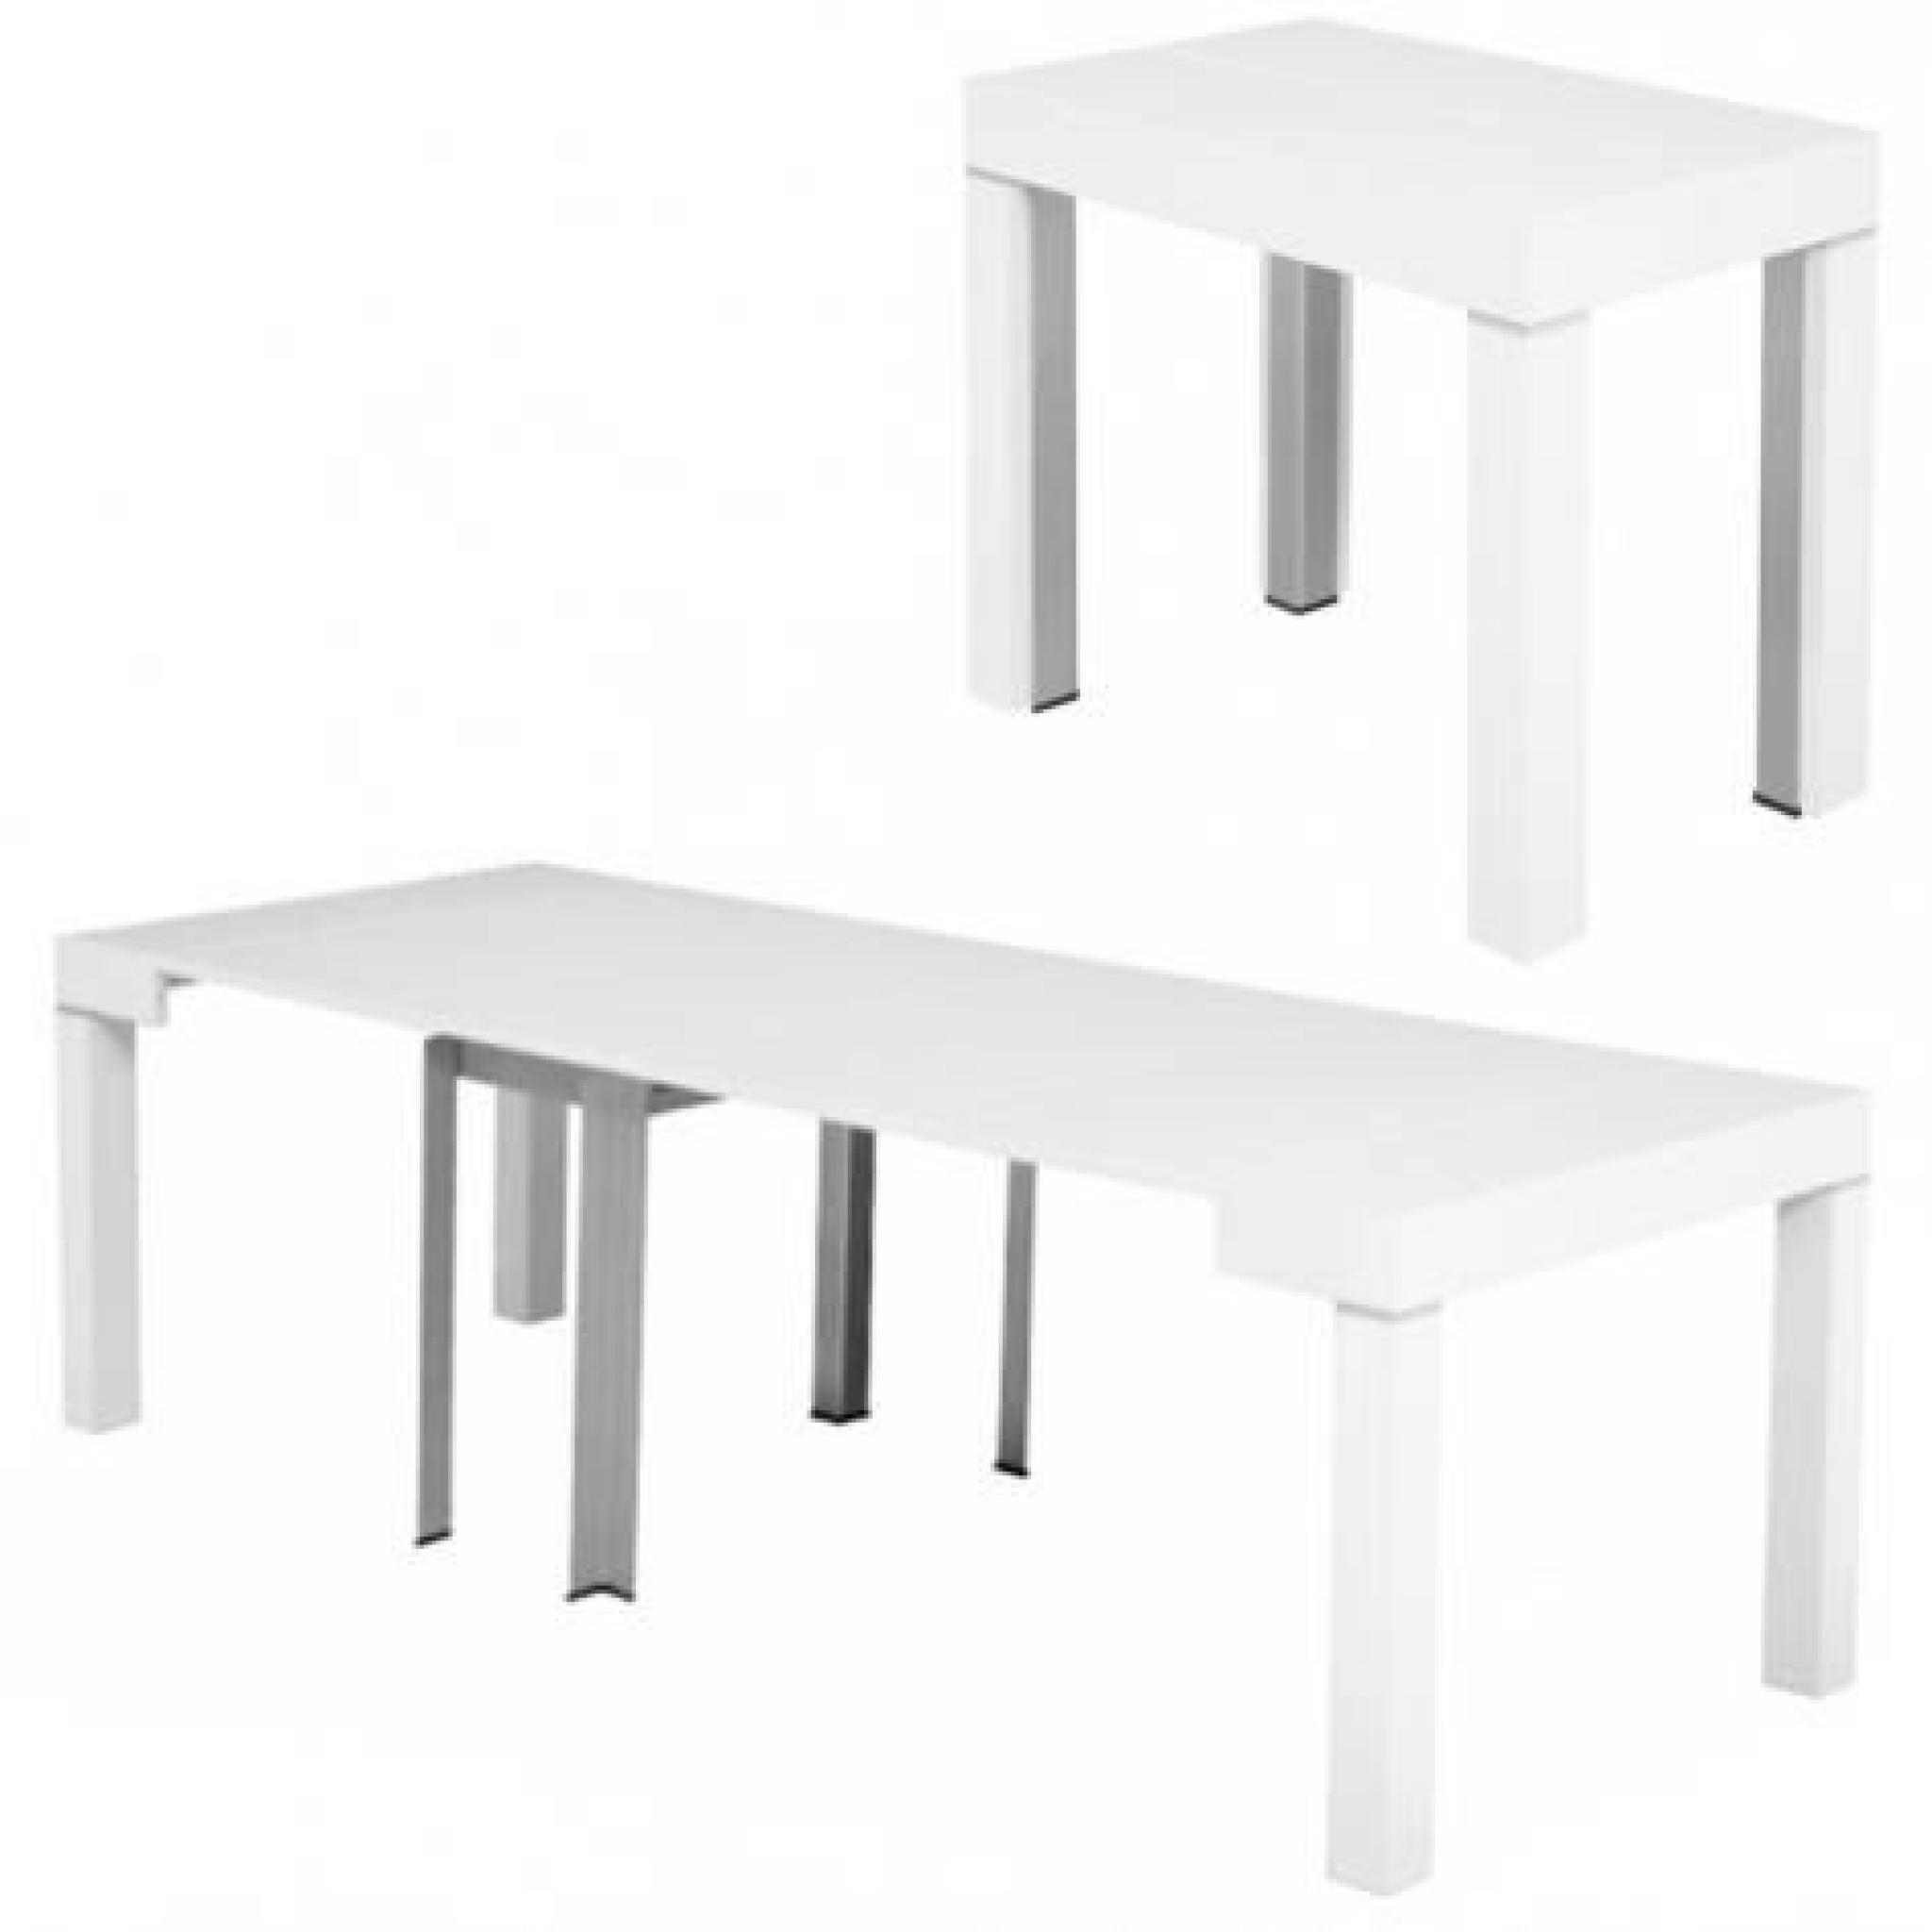 Console extensible laquee maison design - Table extensible laquee ...